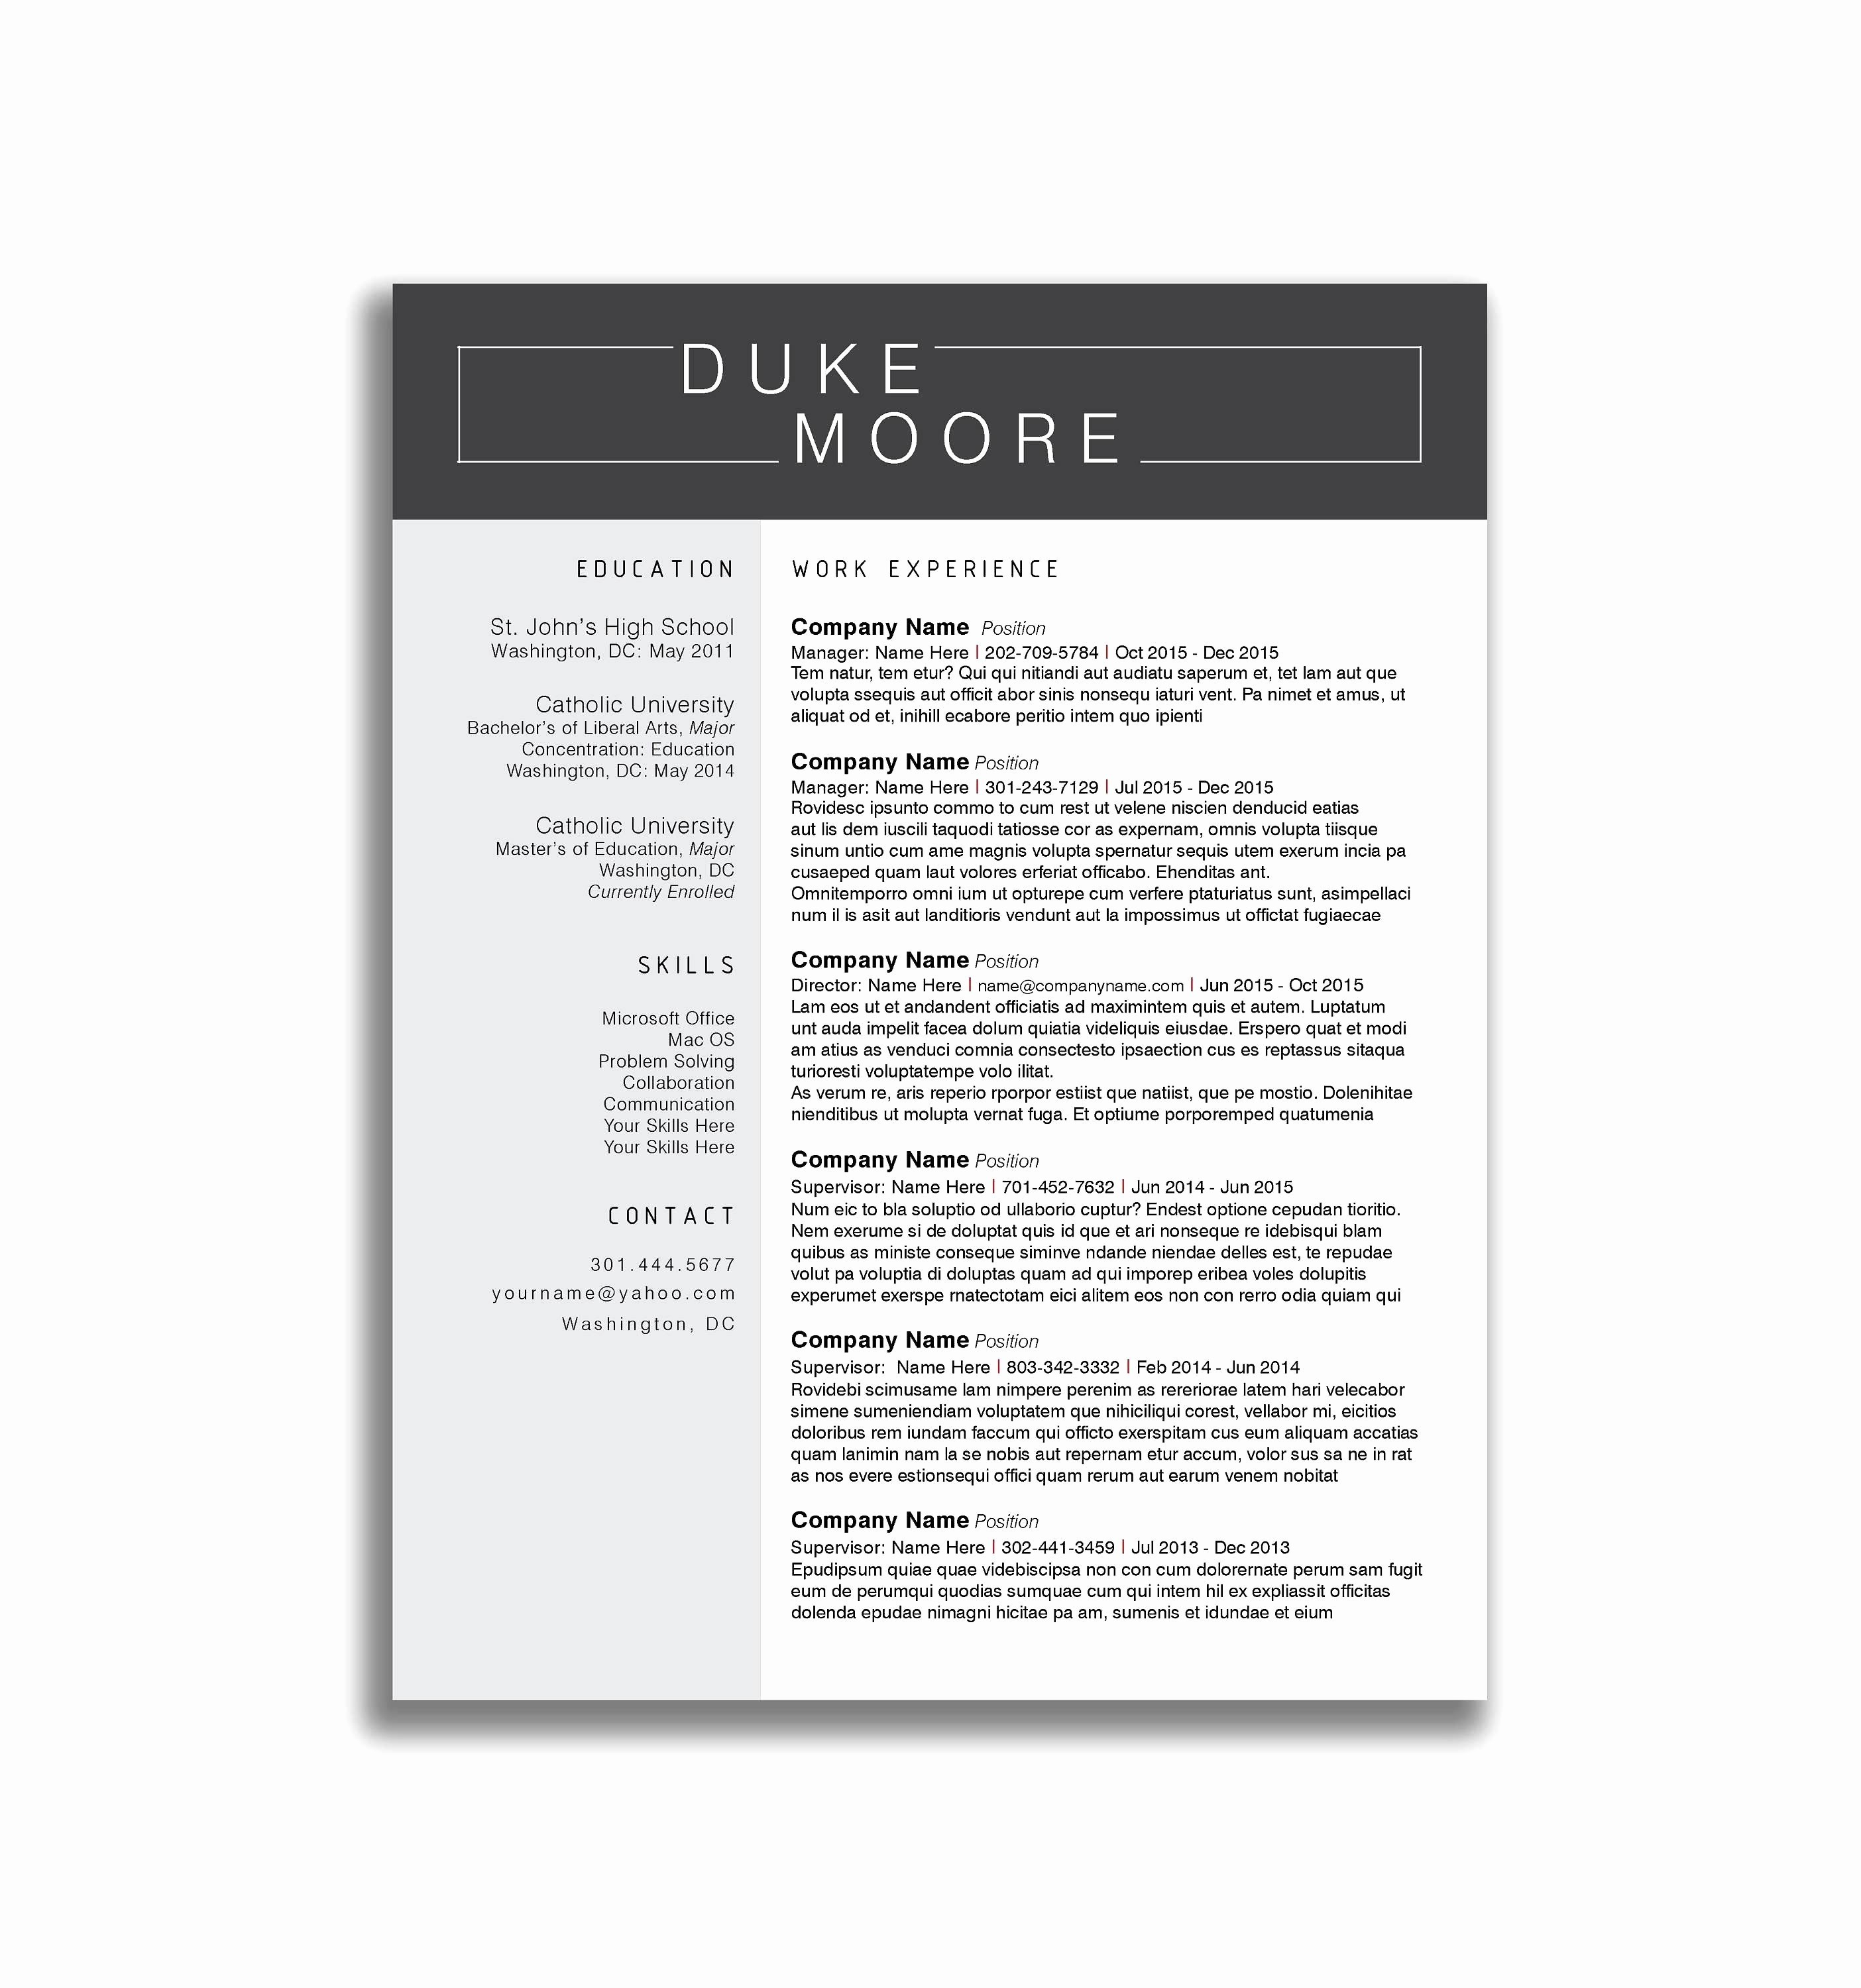 Financial Analyst Resume Template - Resume Examples for Financial Analyst Best Fresh 19 Financial